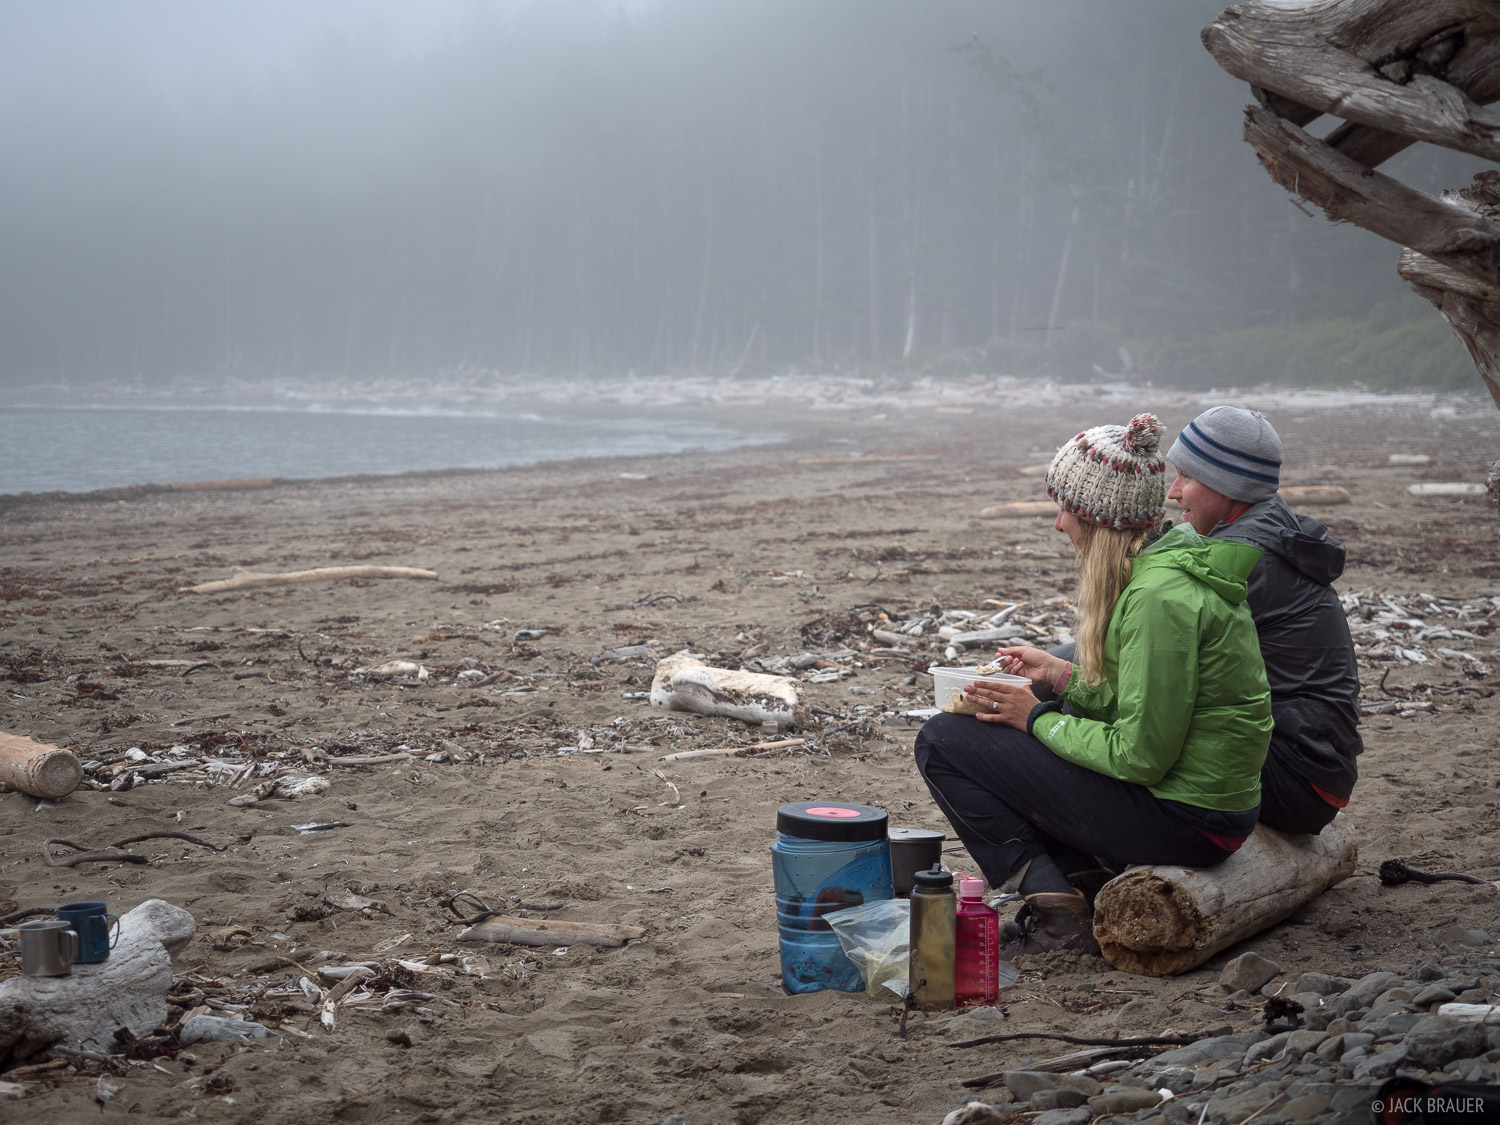 Dinner at Sand Point campsite.